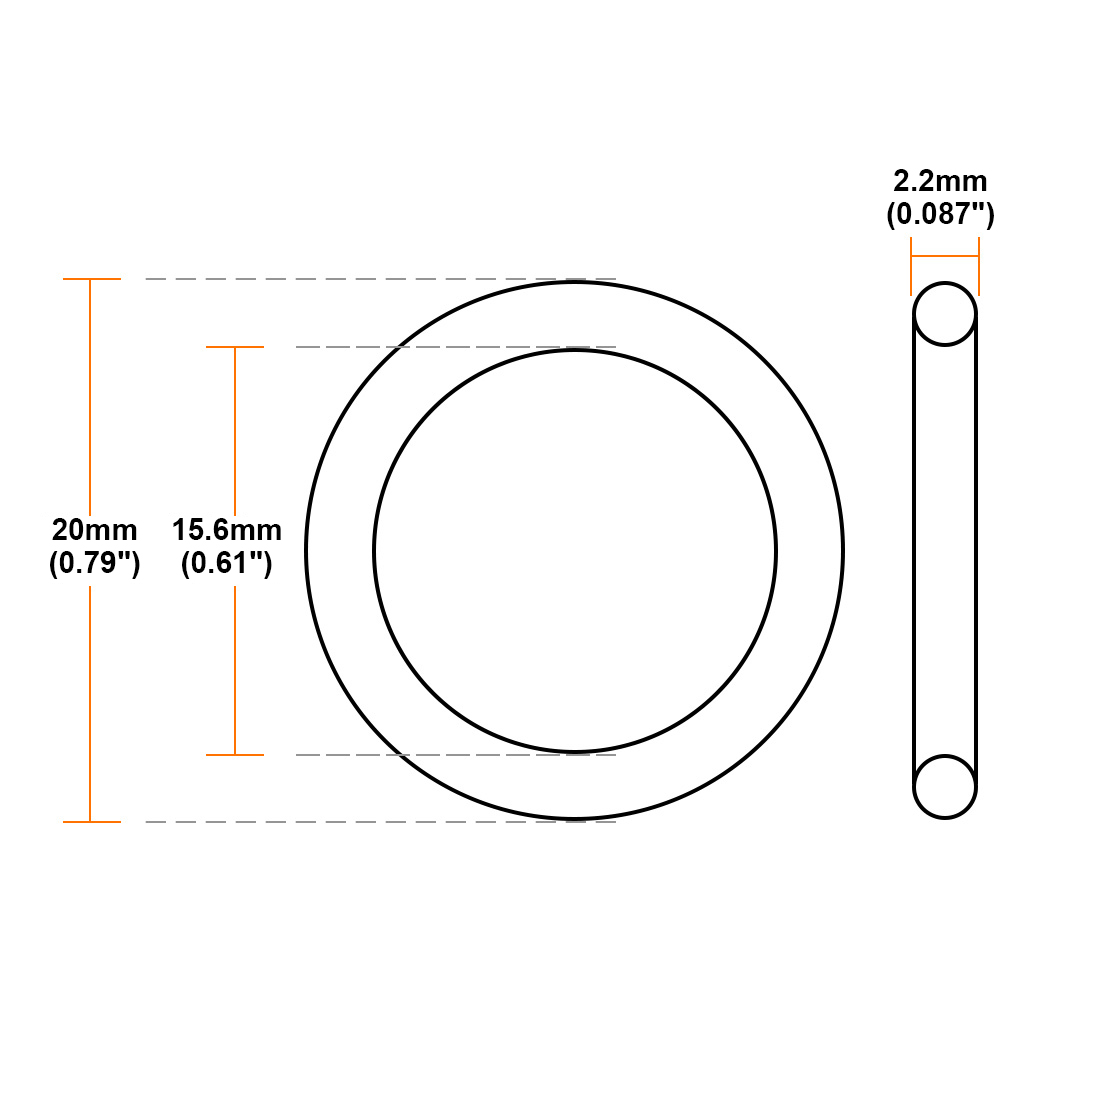 uxcell O-Rings Nitrile Rubber 21mm Inner Diameter 29mm OD 4mm Width Round Seal Gasket 5Pcs